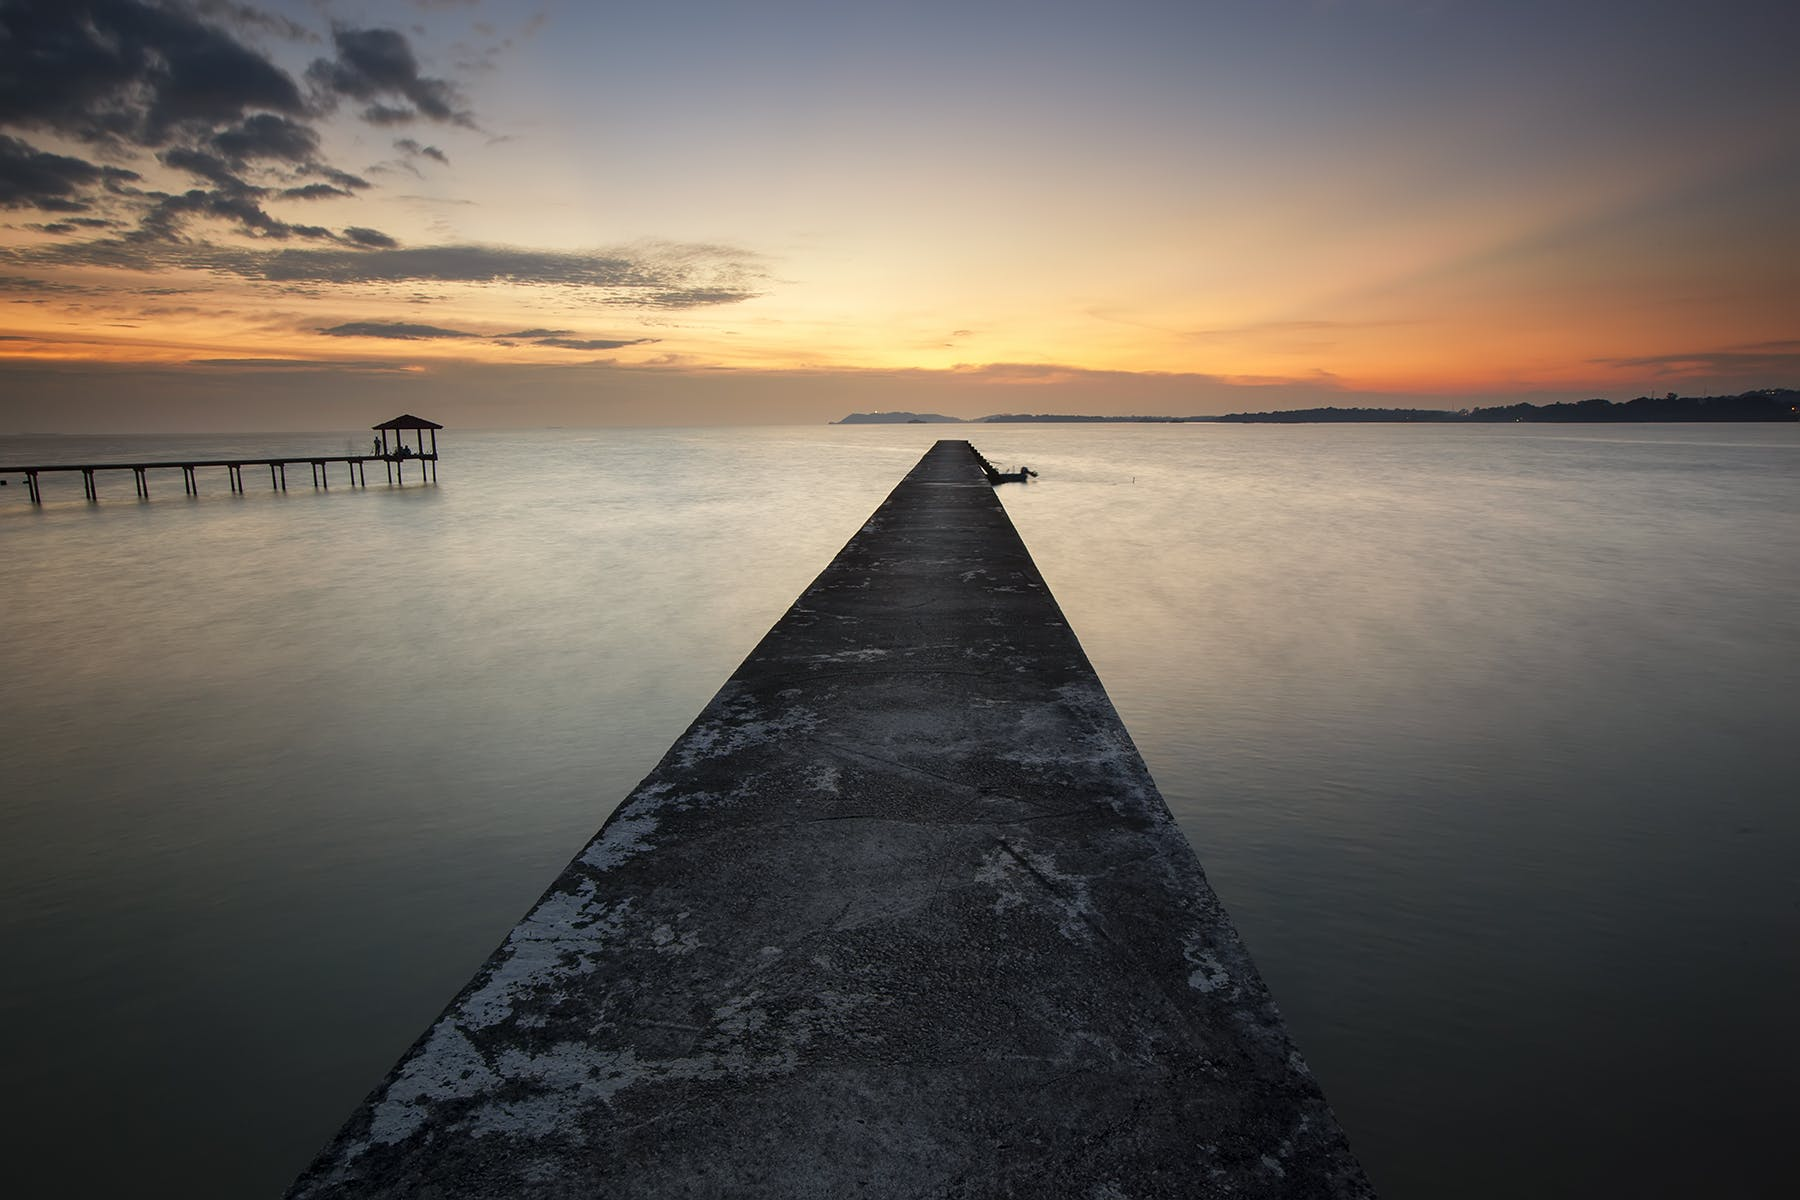 Brown Dock Beside Body of Water during Sunrise